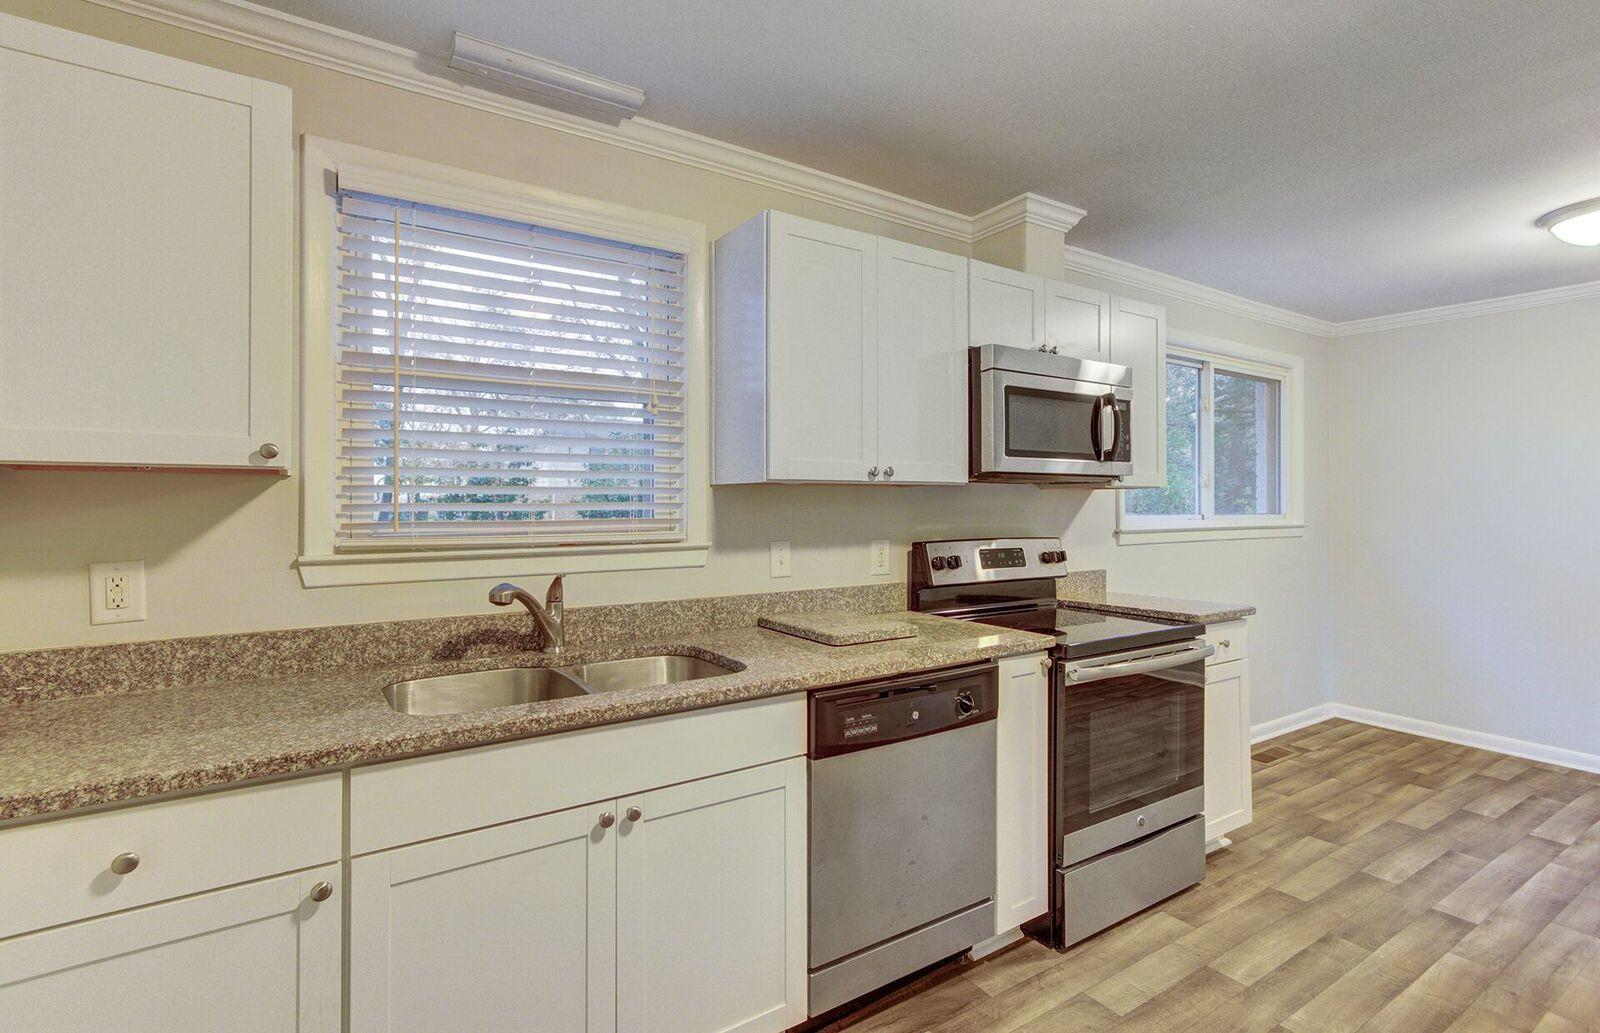 West Glow Homes For Sale - 1104 Crull, Charleston, SC - 8